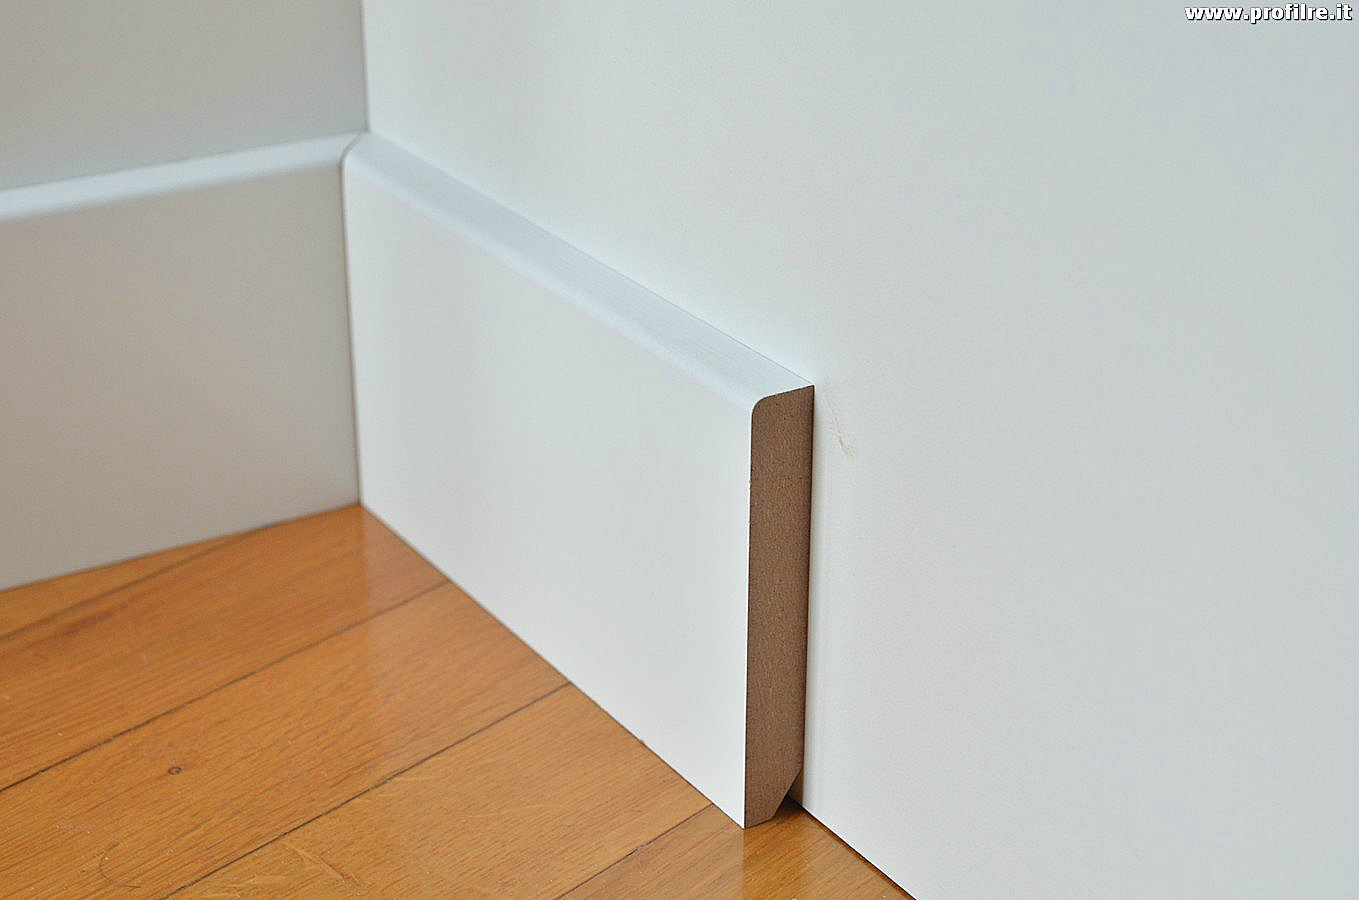 Battiscopa zoccolino in mdf bianco bordo quadro mm80x13 - Battiscopa in legno ikea ...